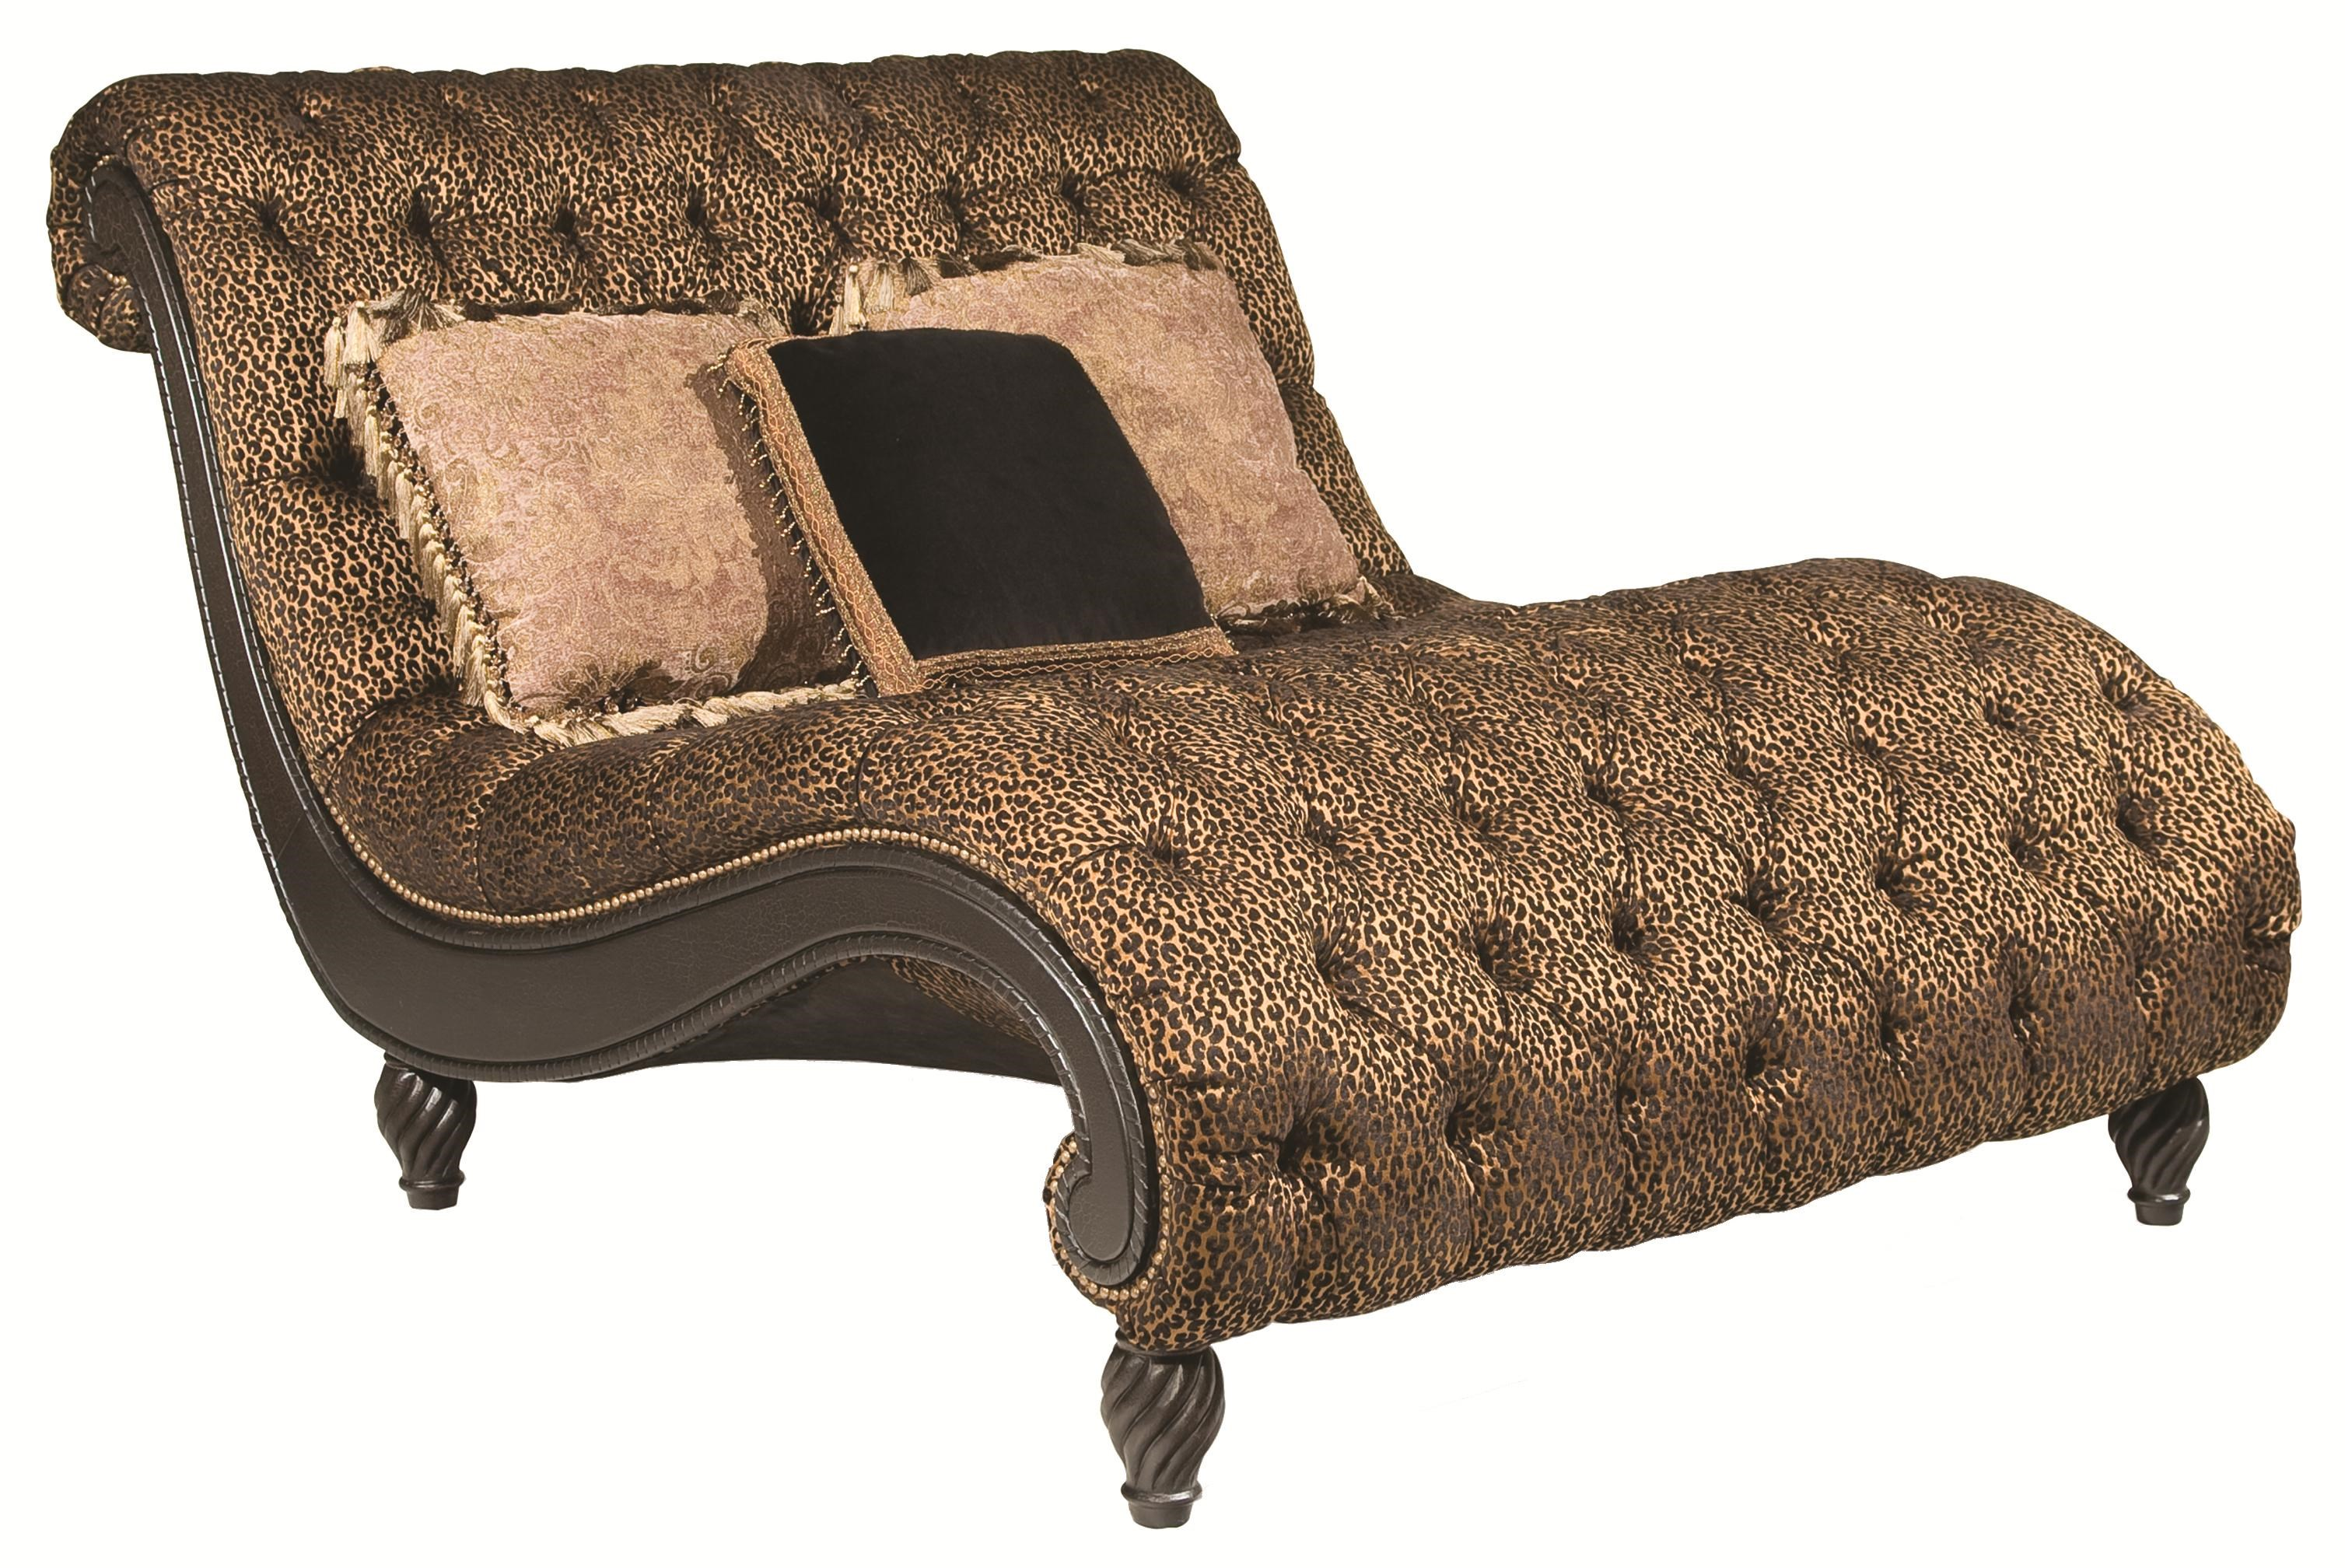 Delicieux Rachlin Classics Dinah Decorative Dinah Chaise With Exotic Furniture Appeal